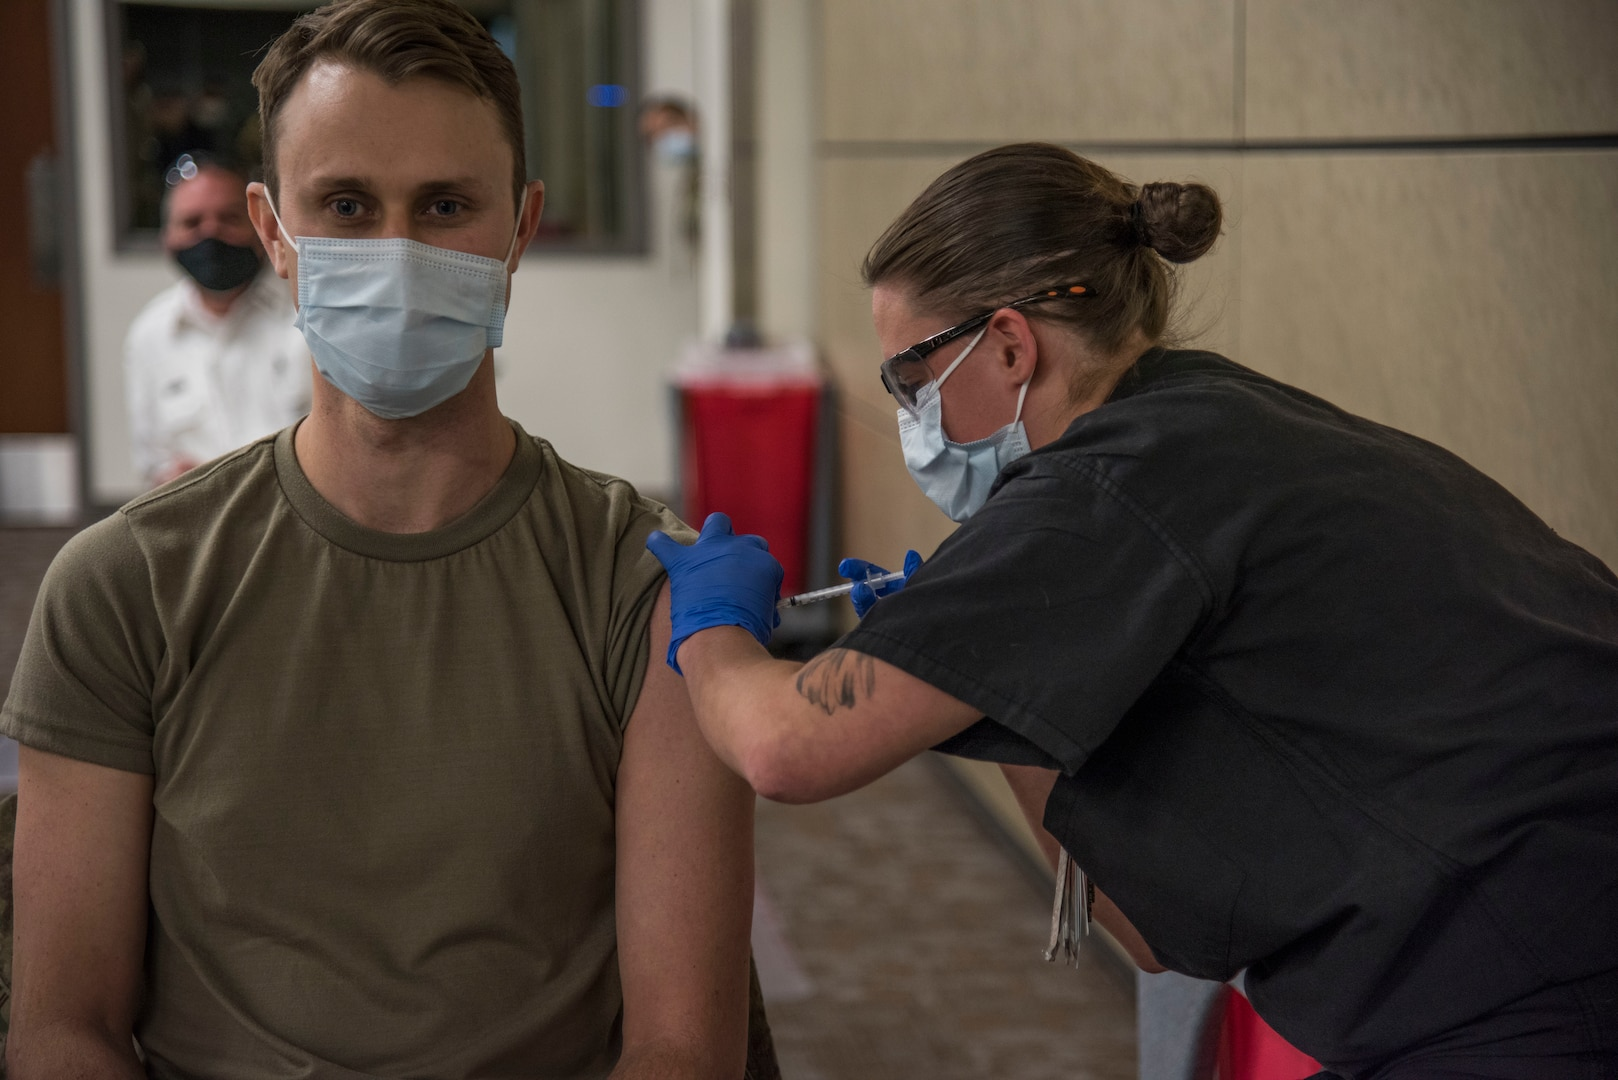 The Department of Defense is conducting a coordinated vaccine distribution strategy for prioritizing and administering COVID-19 vaccines.